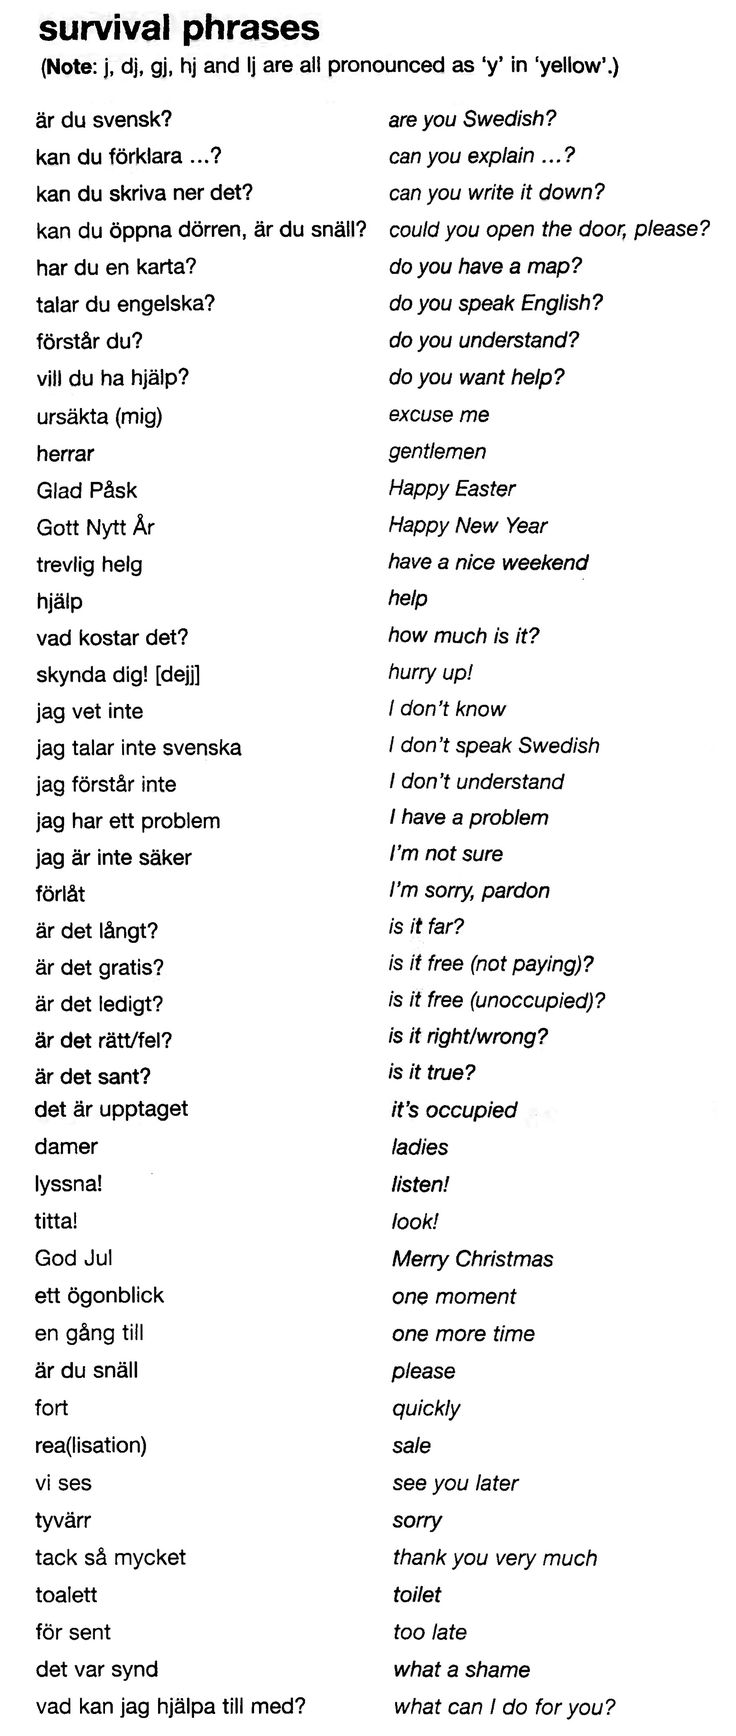 Good Swedish phrases to know.